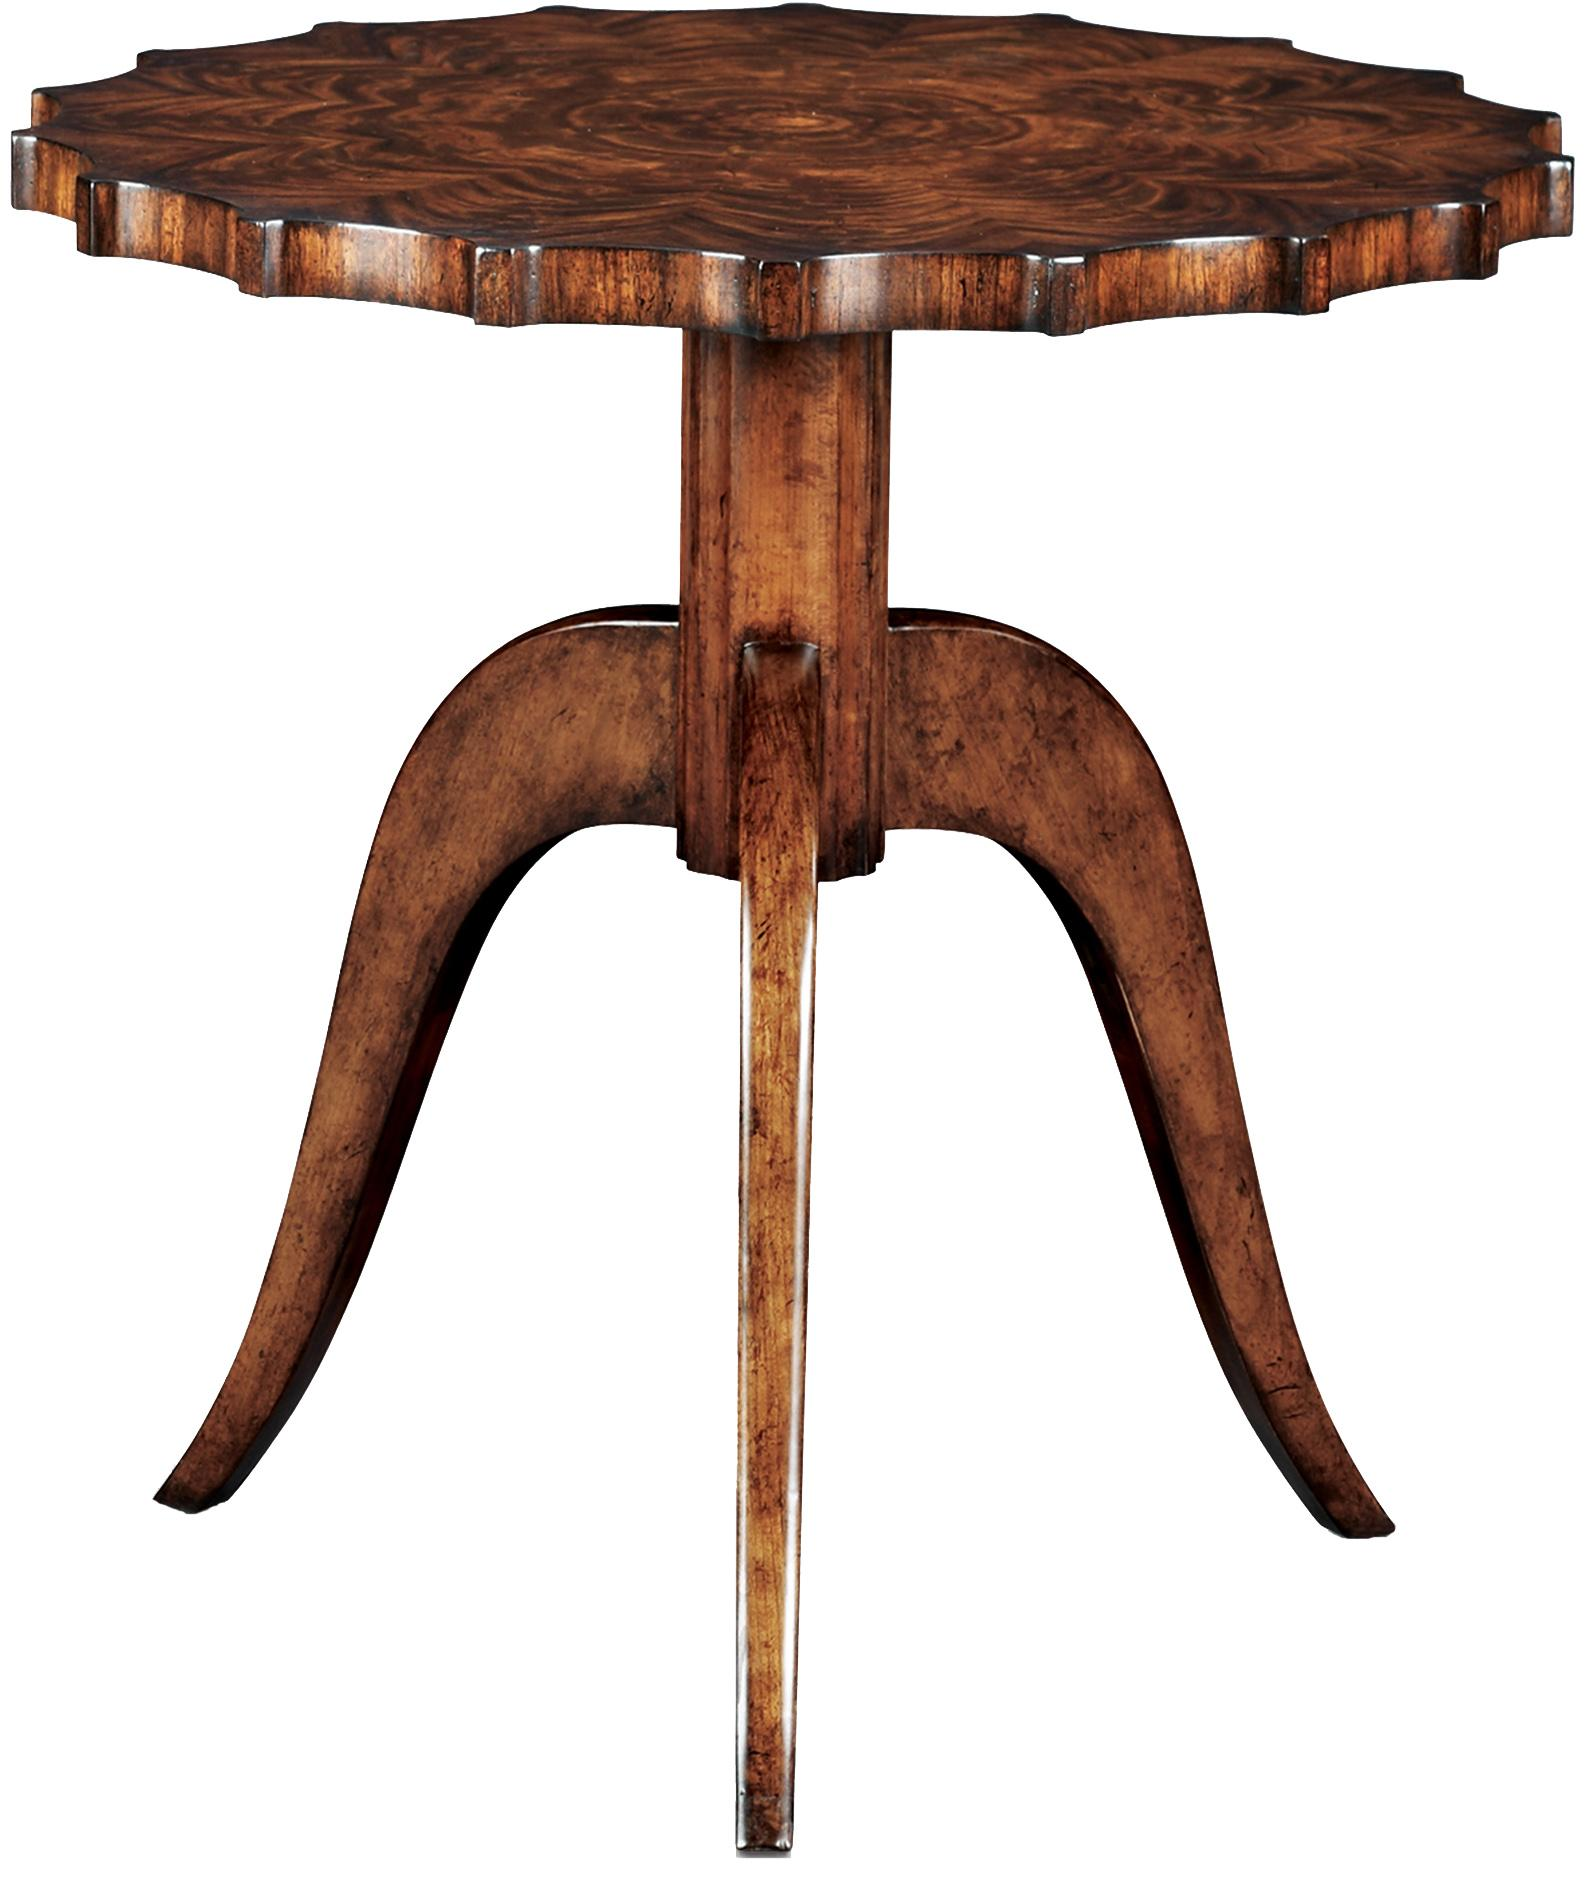 Vanucci Eclectics End Table by Theodore Alexander at Baer's Furniture